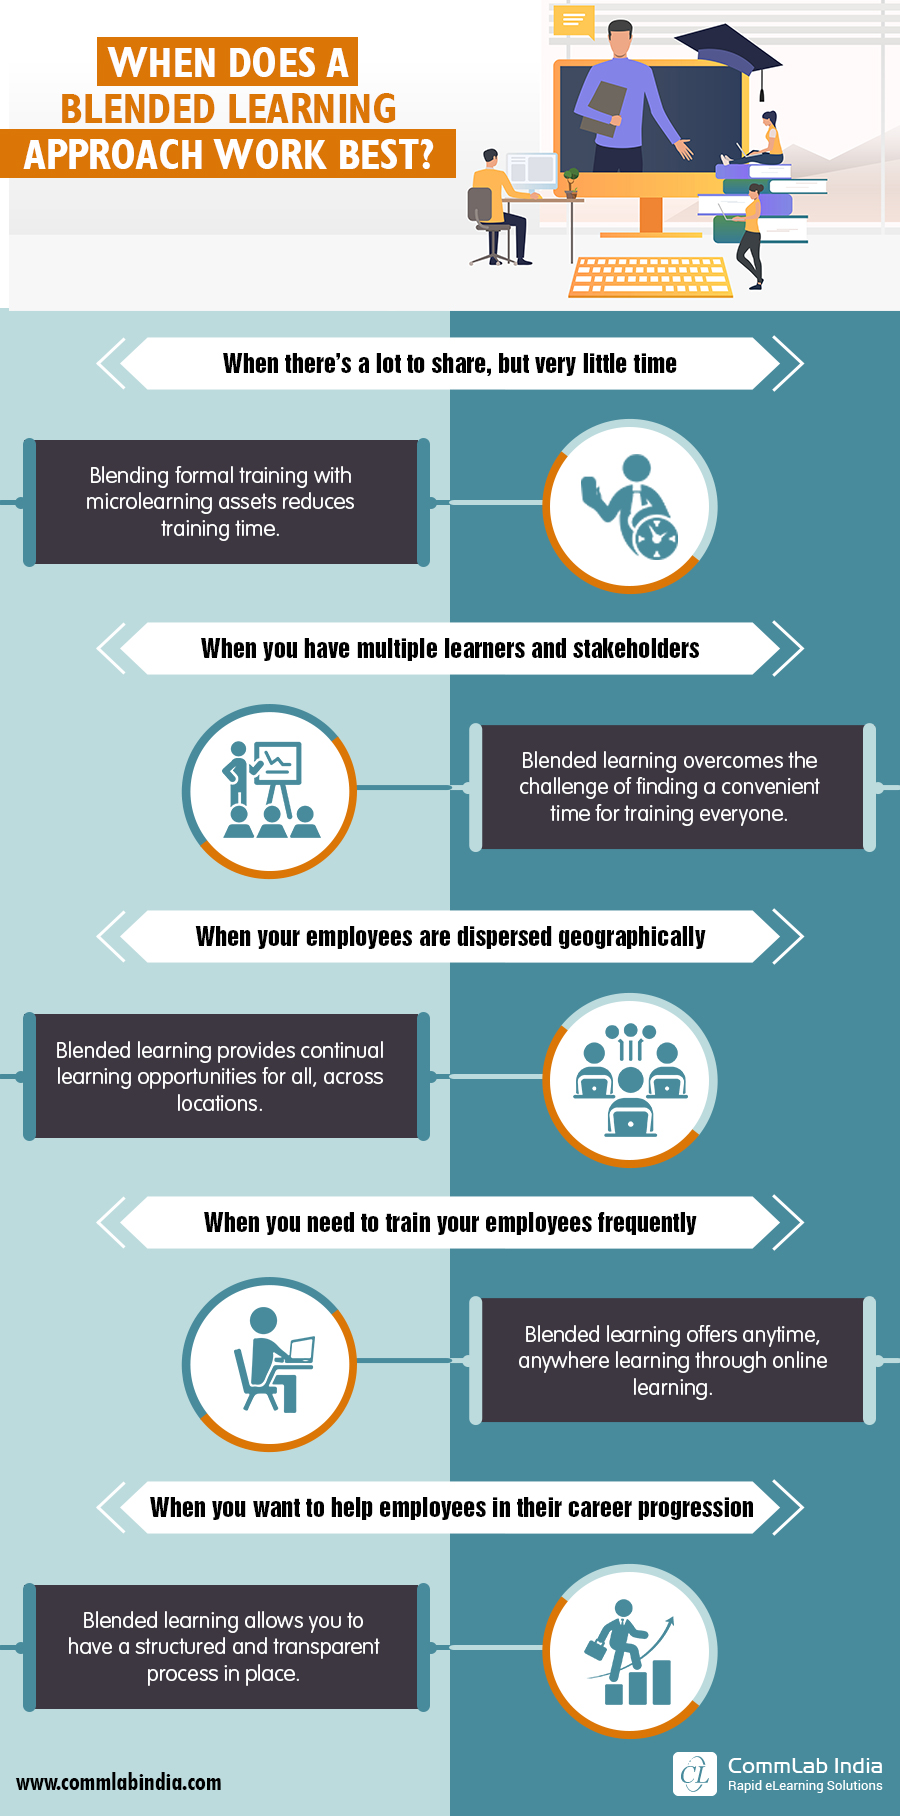 In What Situations is Blended Learning the Best Teaching/Learning Approach - Infographic